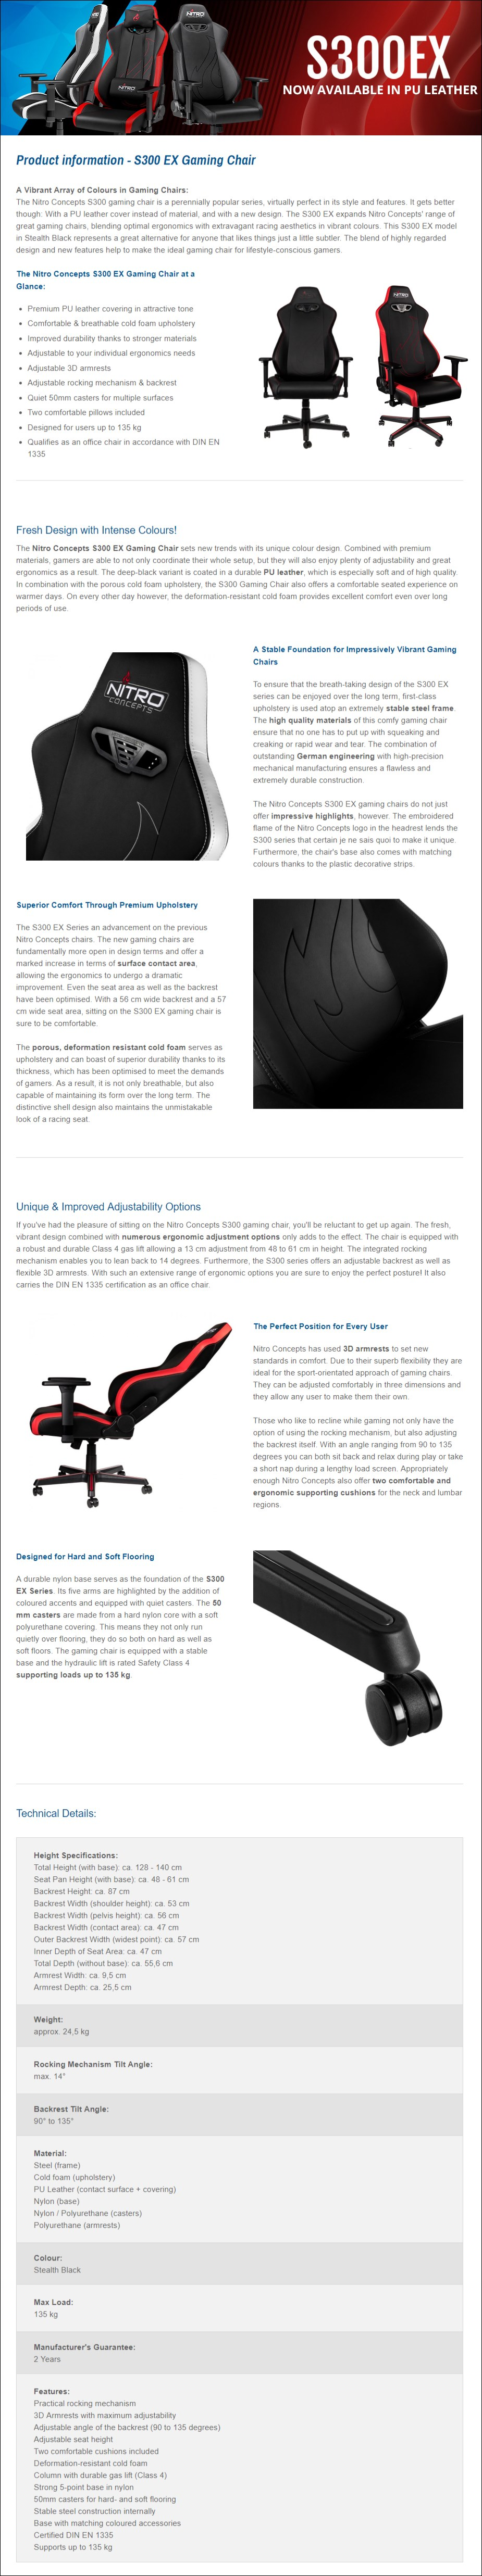 Nitro Concepts S300 EX Series Gaming Chair - Carbon Black - Desktop Overview 1